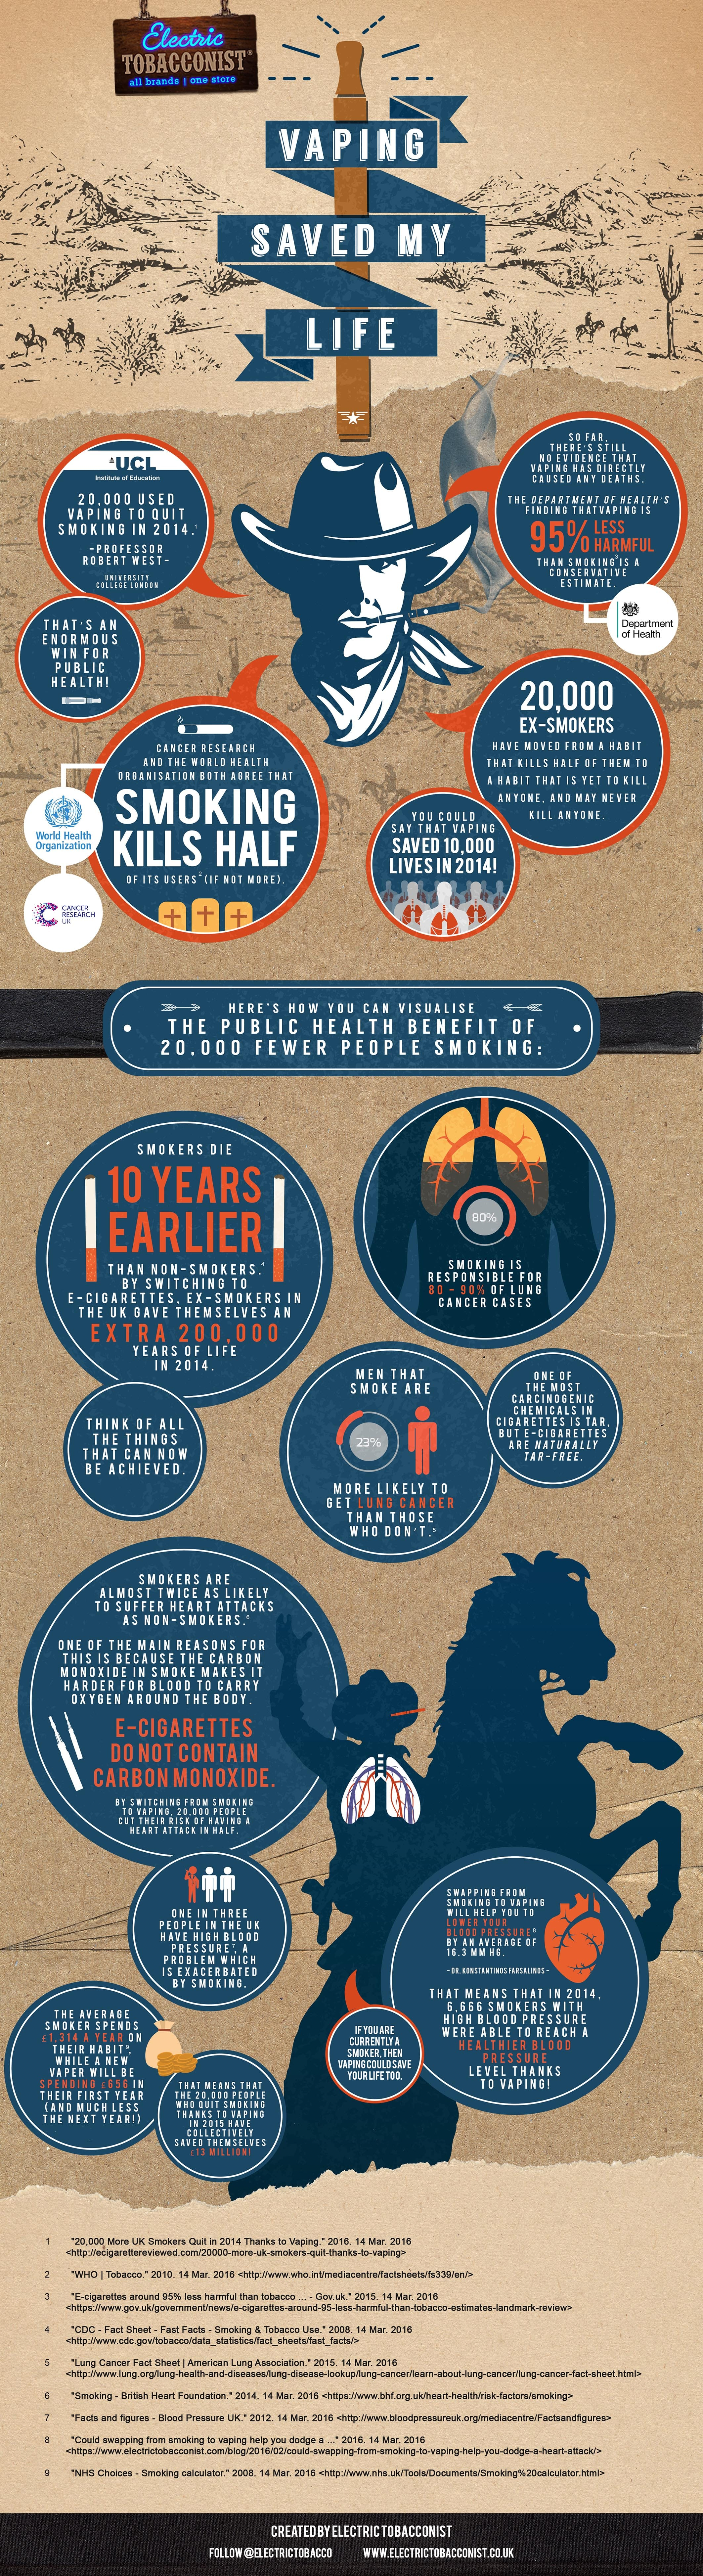 Vaping Saved My Life – Electric Tobacconist Infographic UK